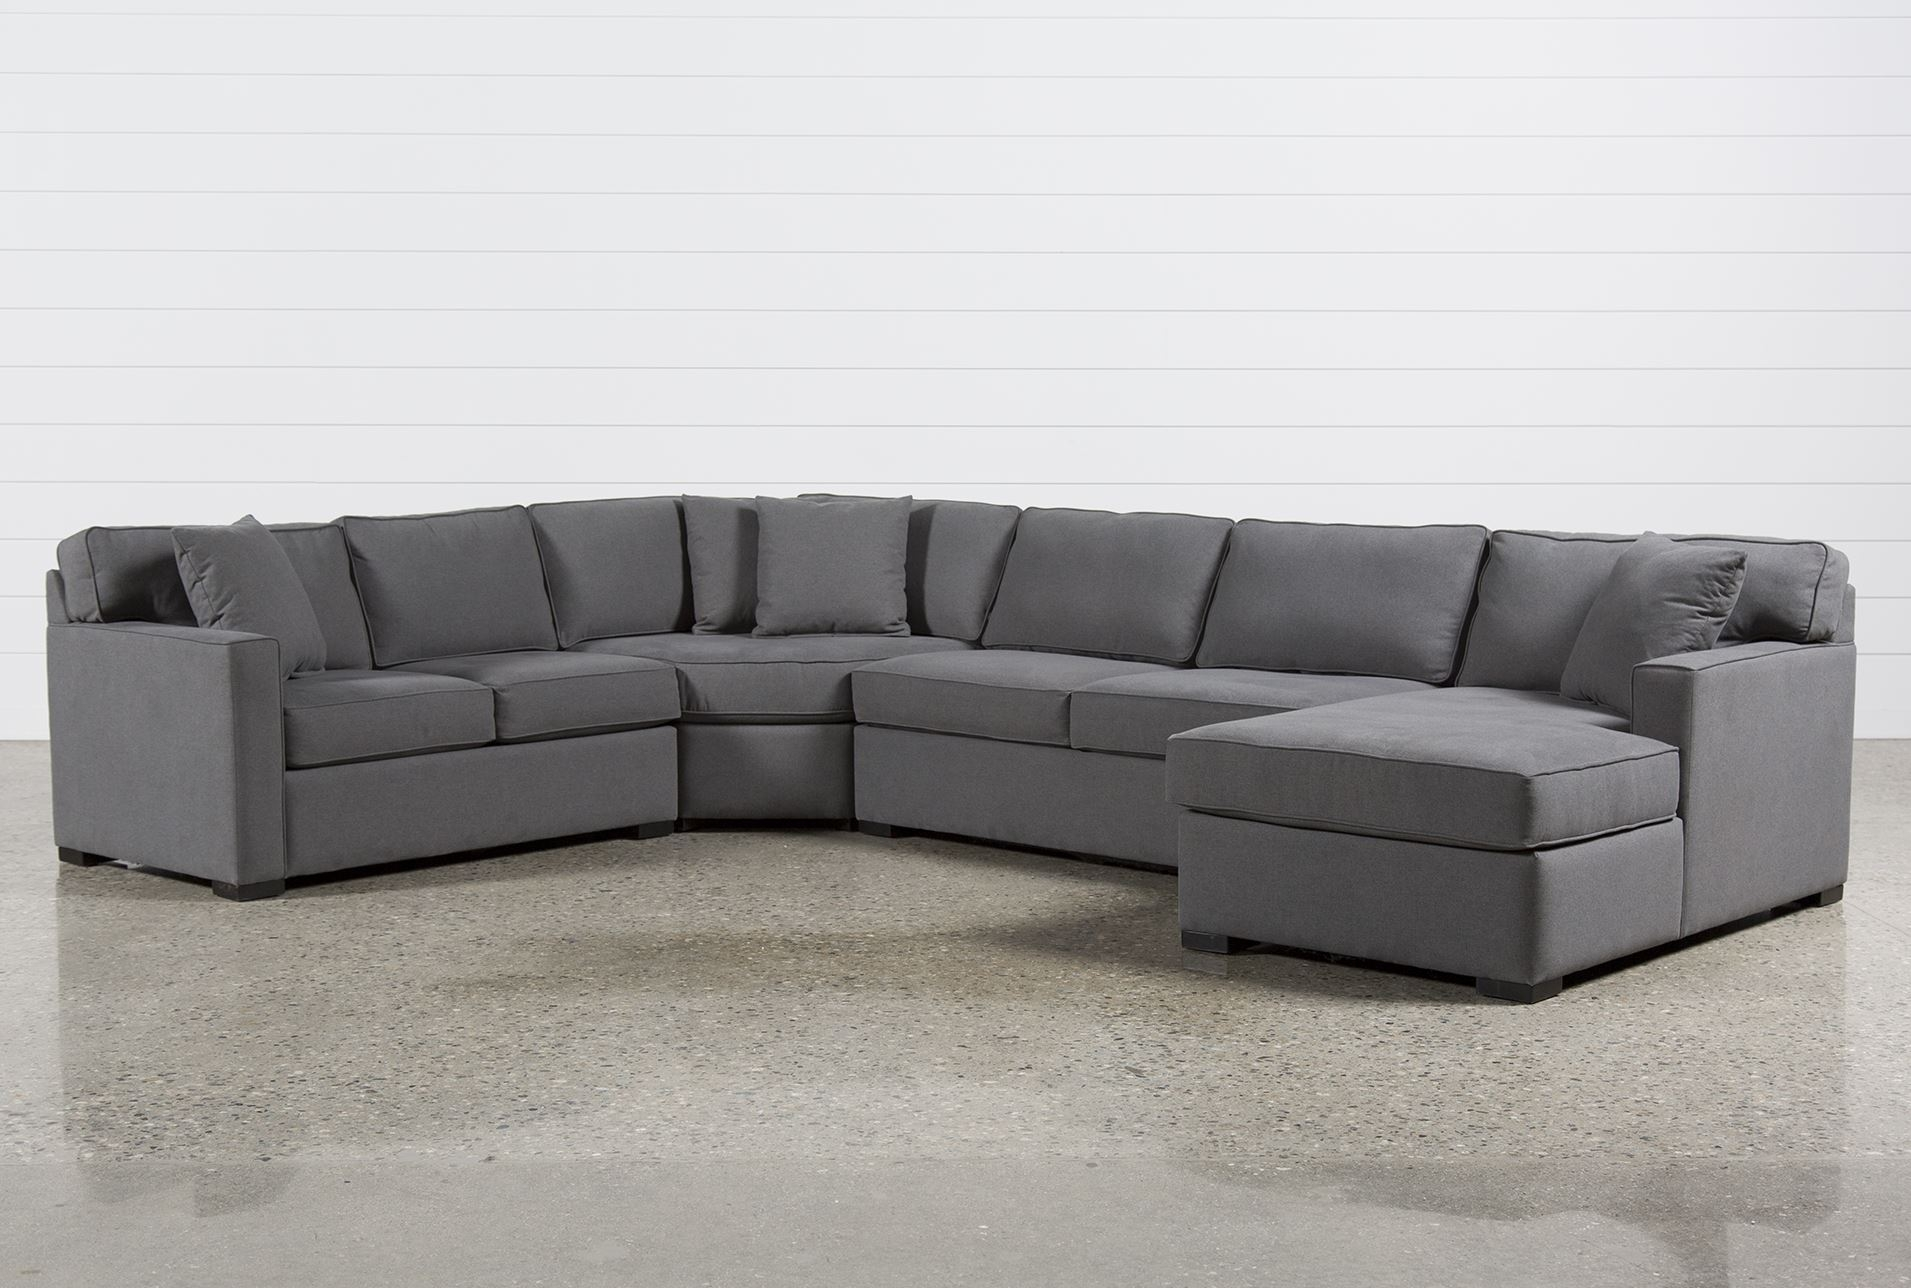 12 Best Ideas of 45 Degree Sectional Sofa